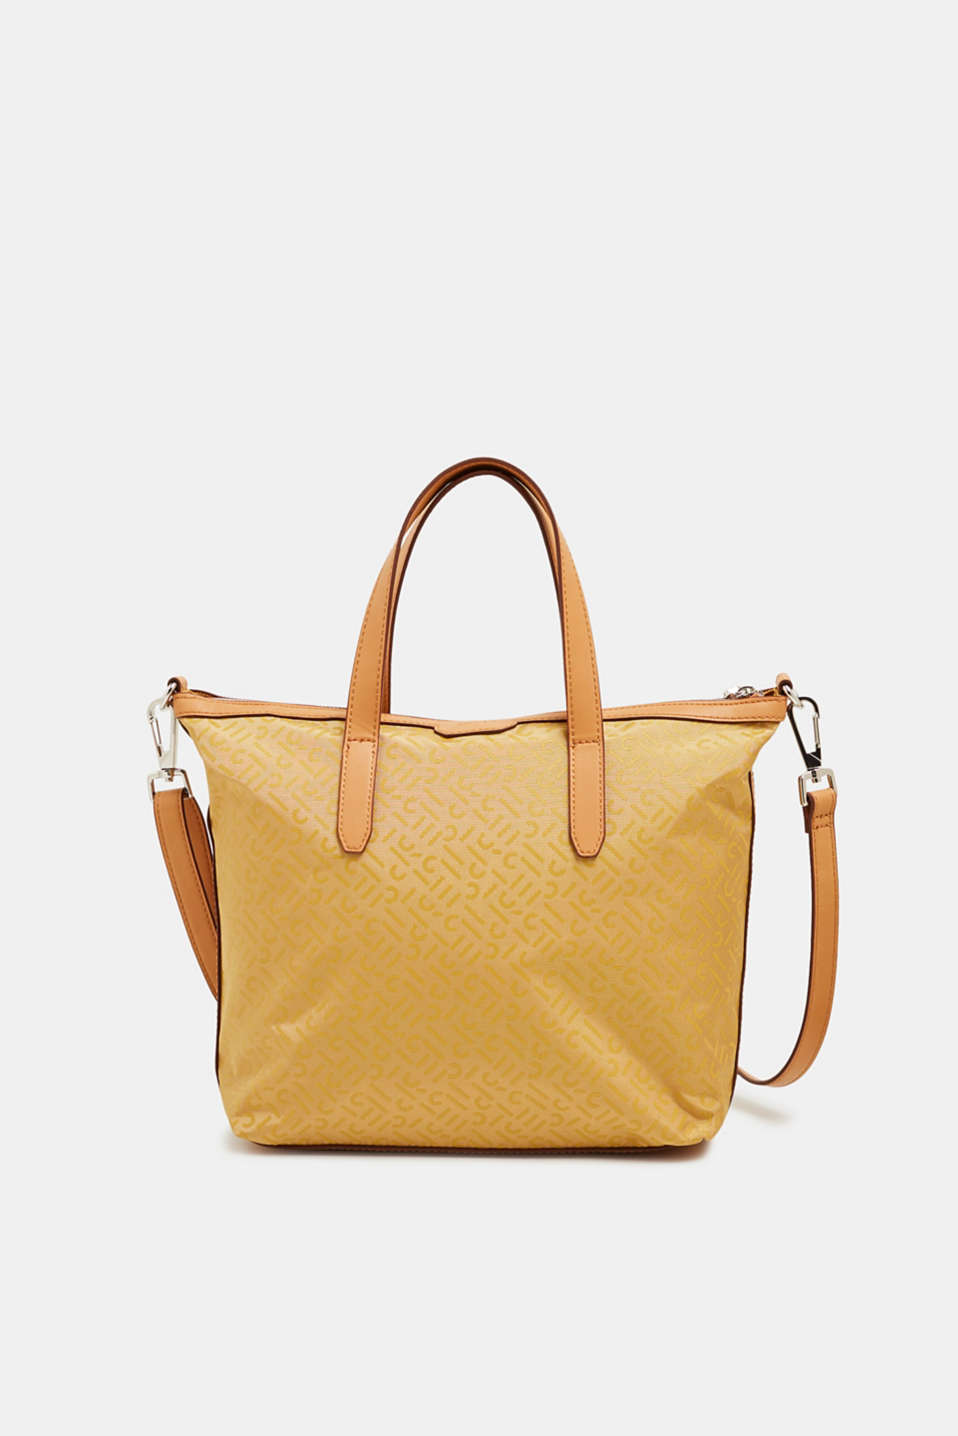 Esprit - Monogram shoulder bag made of nylon